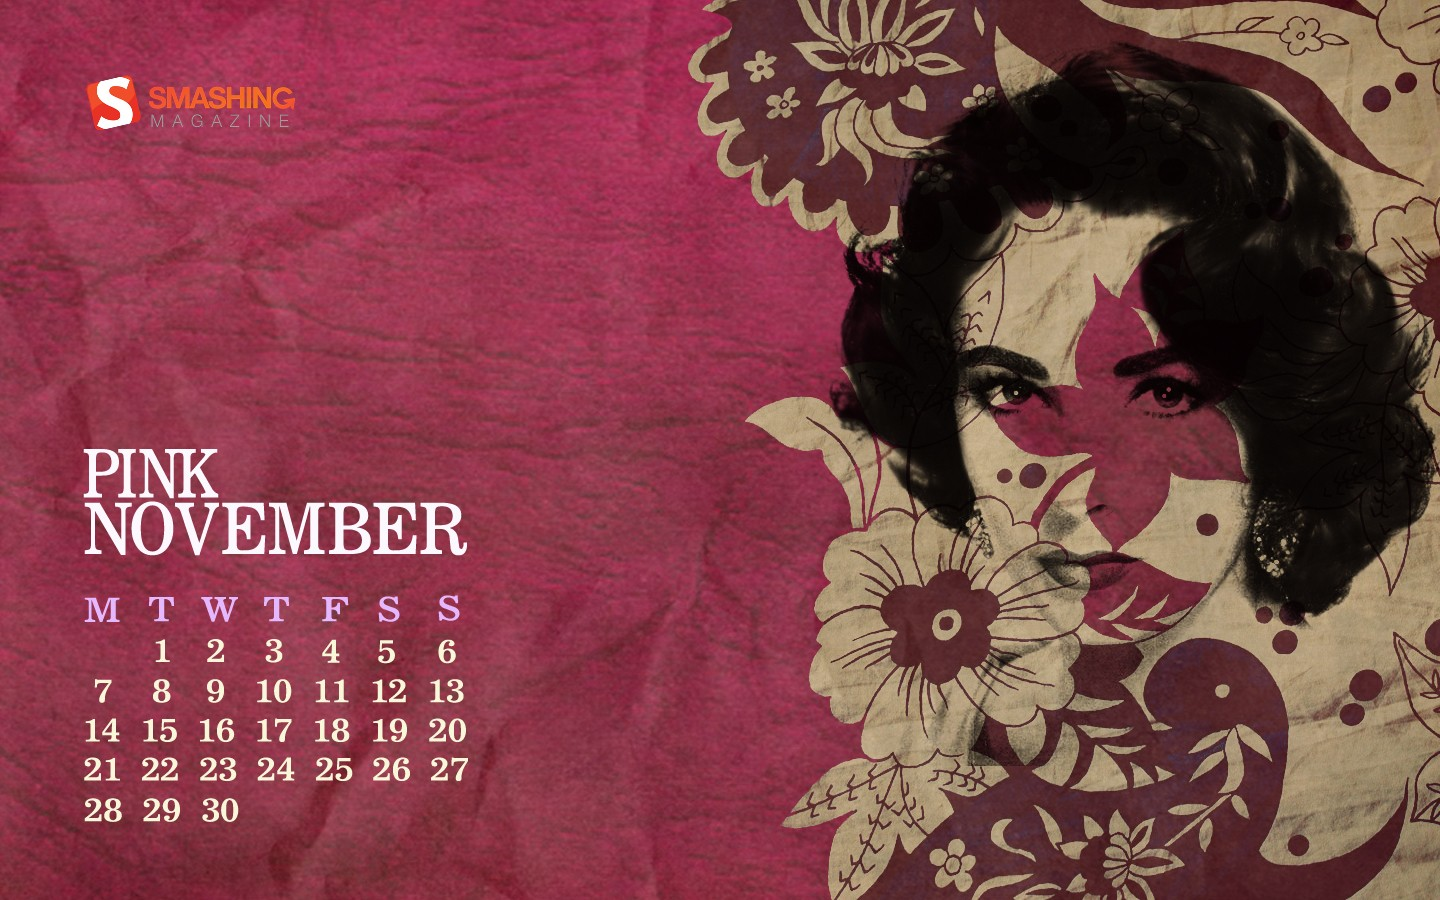 In January Calendar Wallpaper 31011